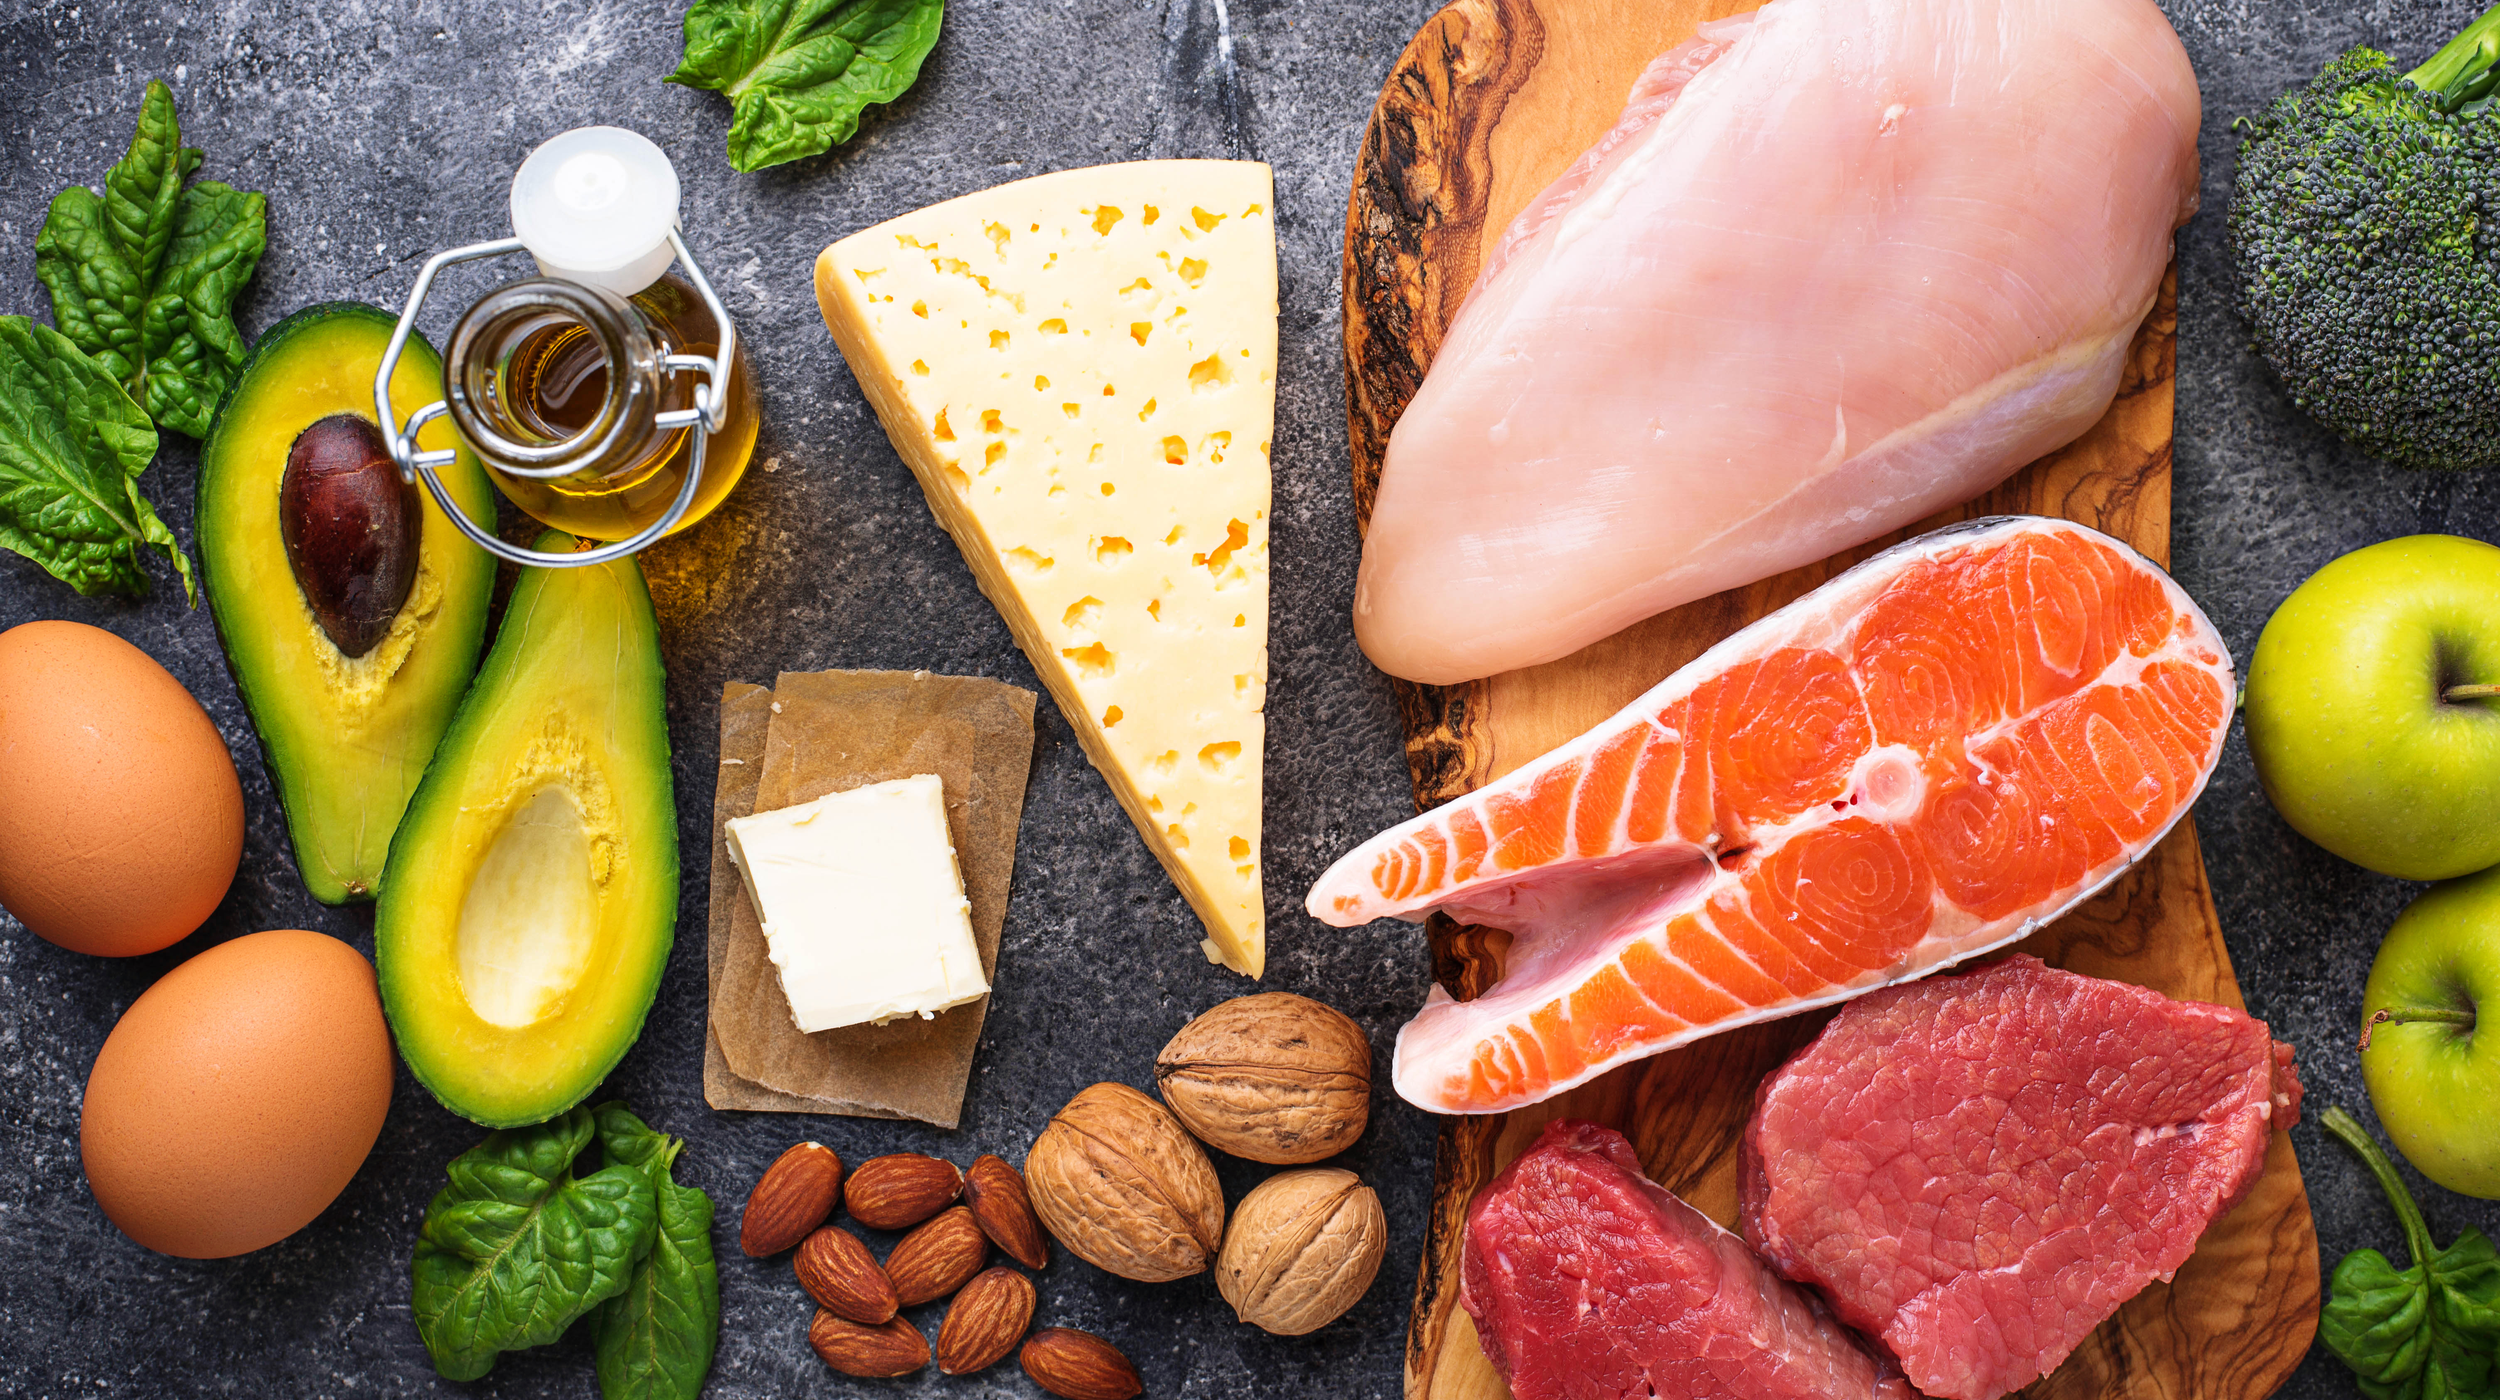 The Keto Diet is Making People Fat